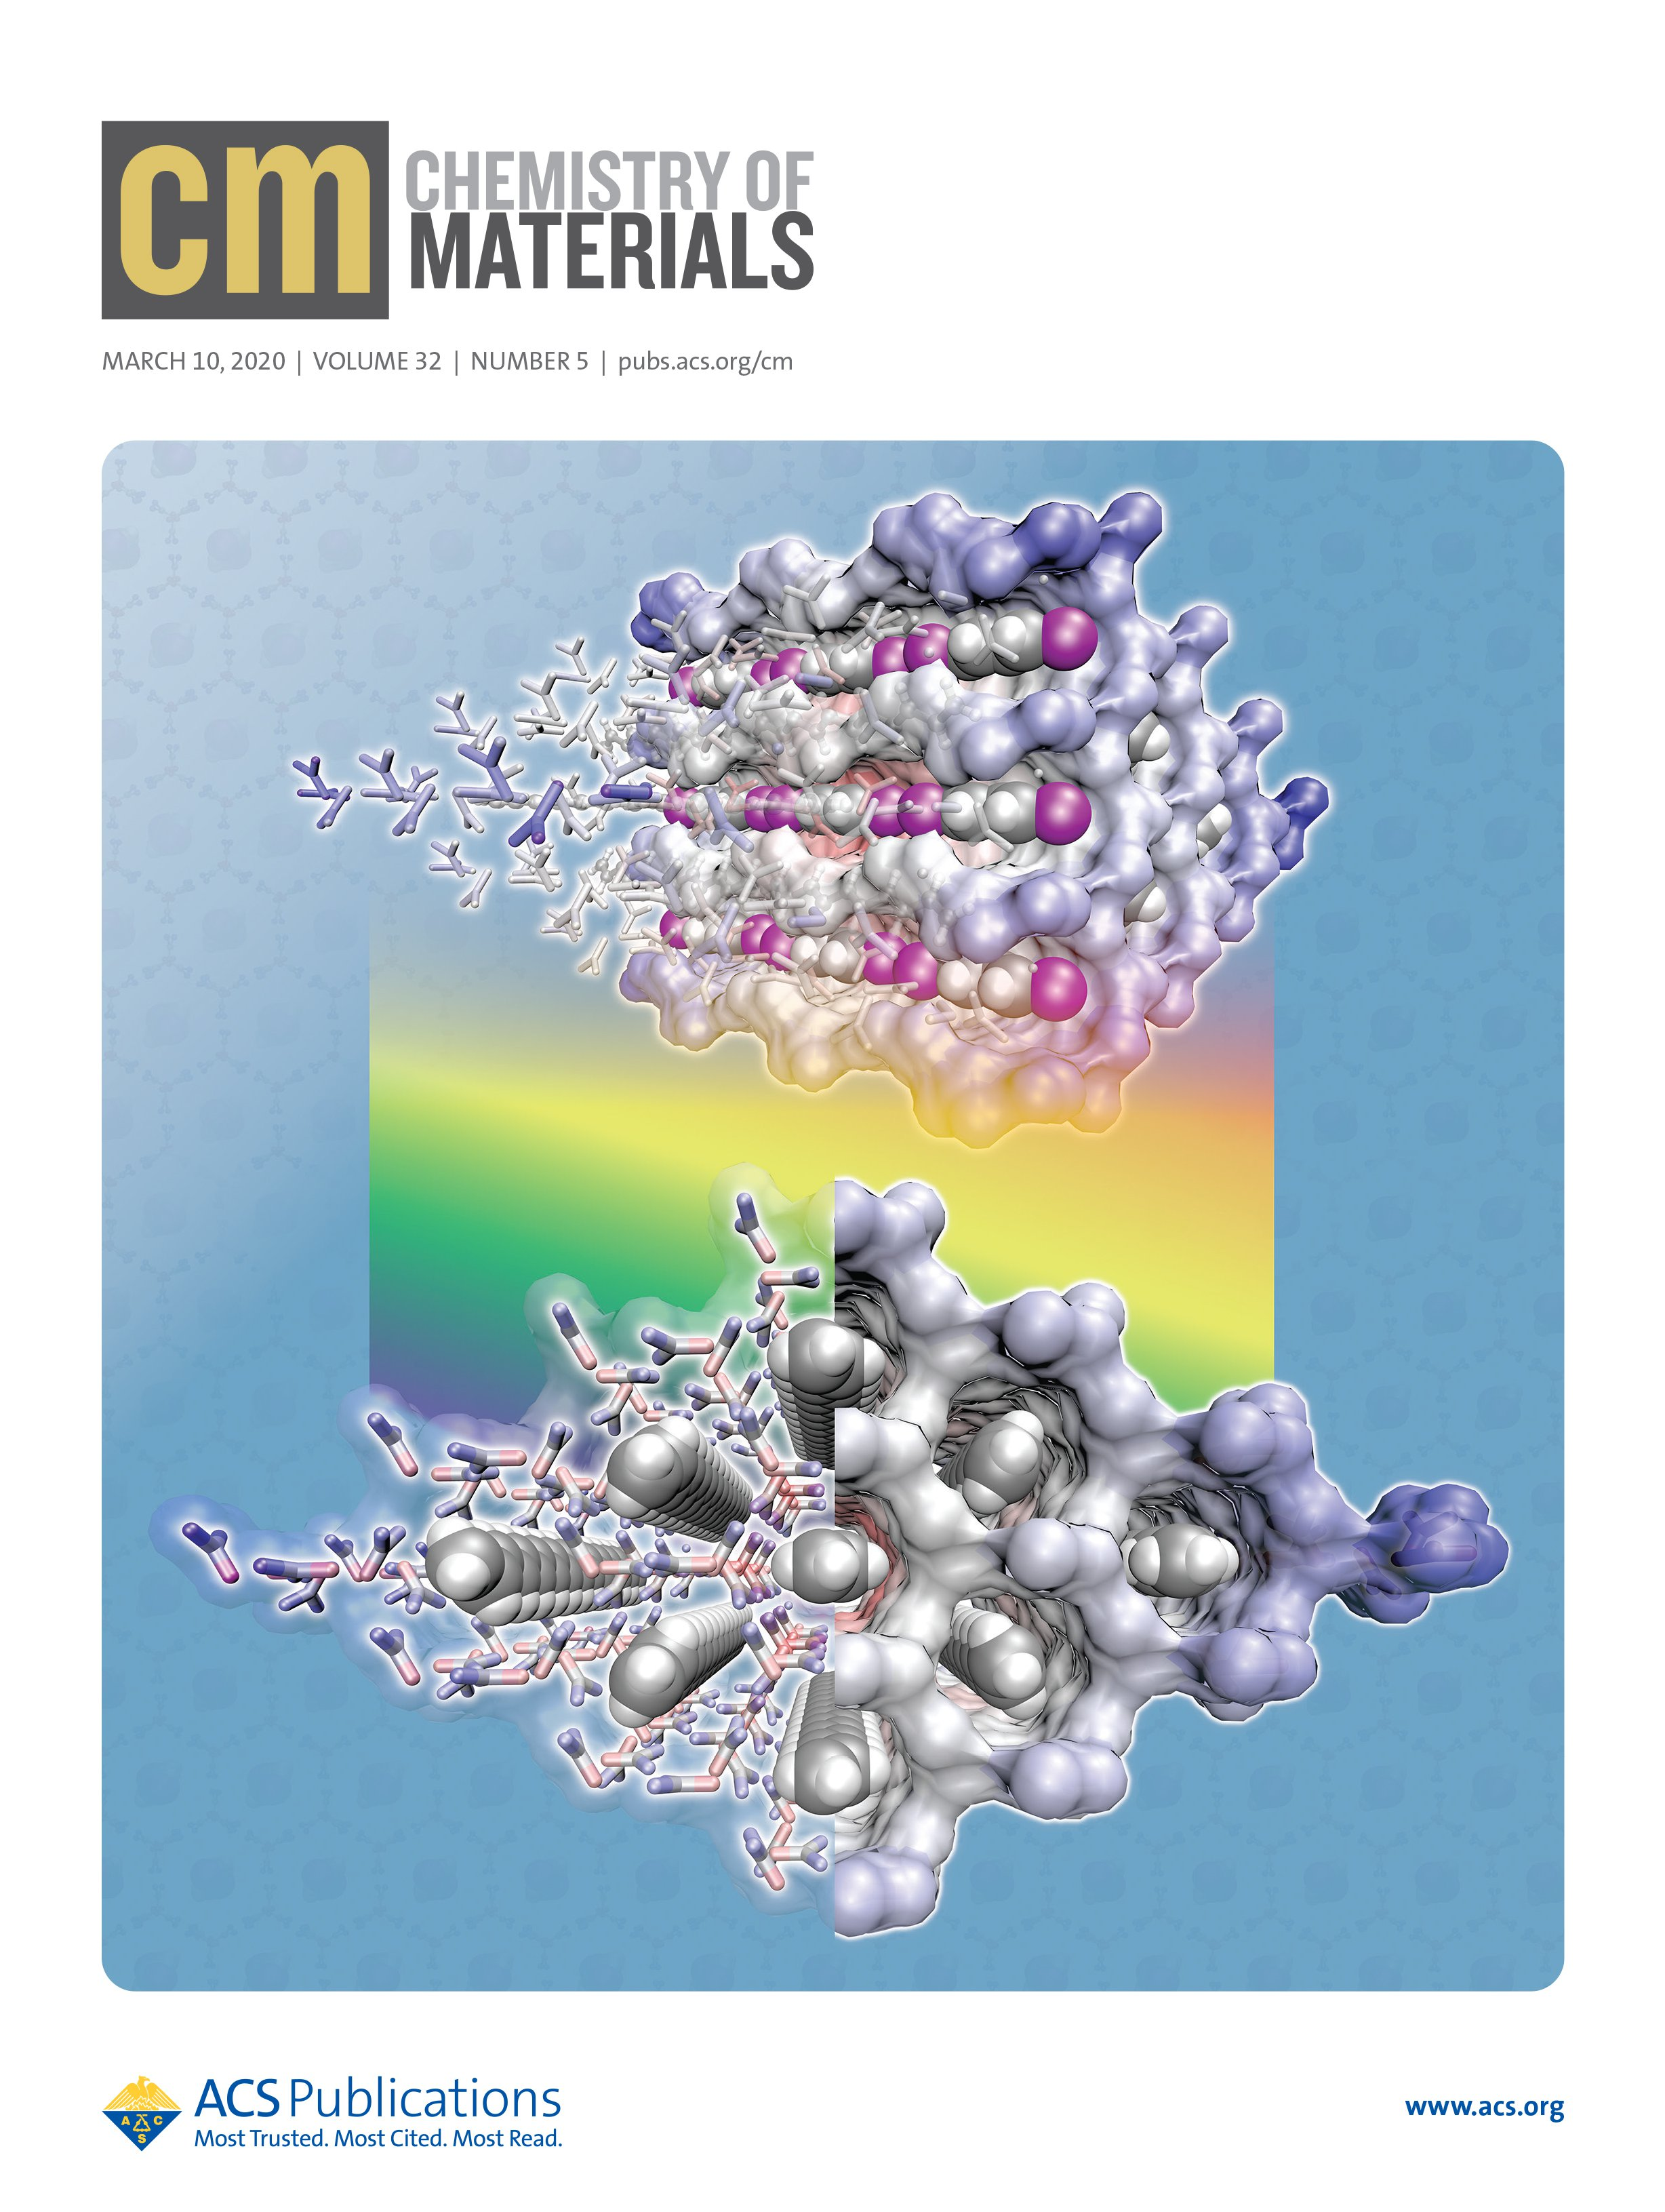 March 2020 Issue of Chemistry of Materials